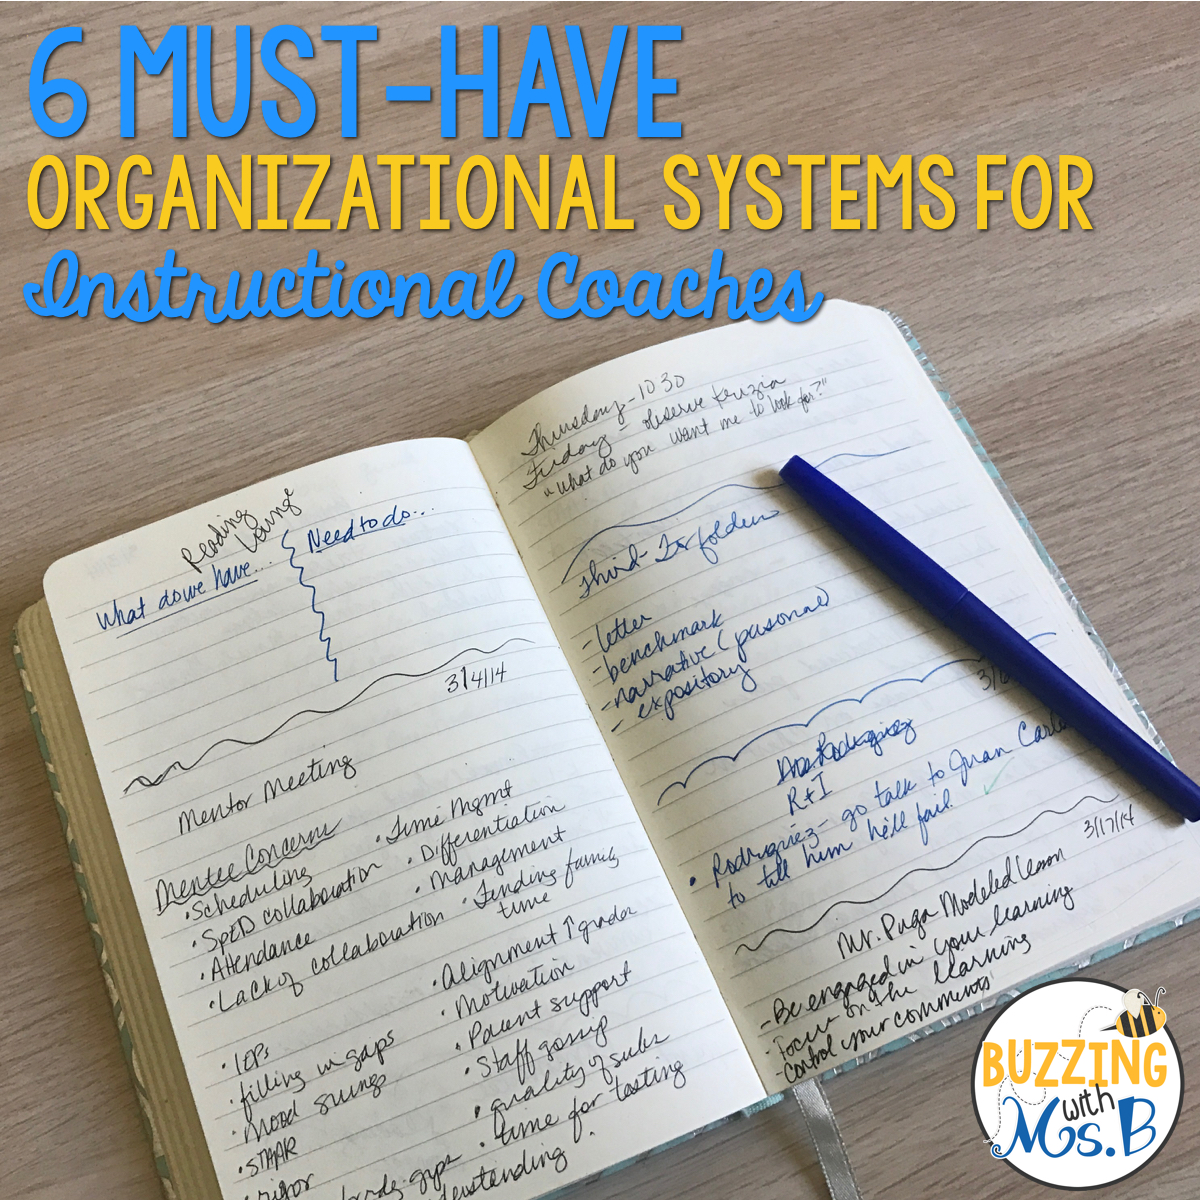 6 Must-Have Organizational Systems for Instructional Coaches